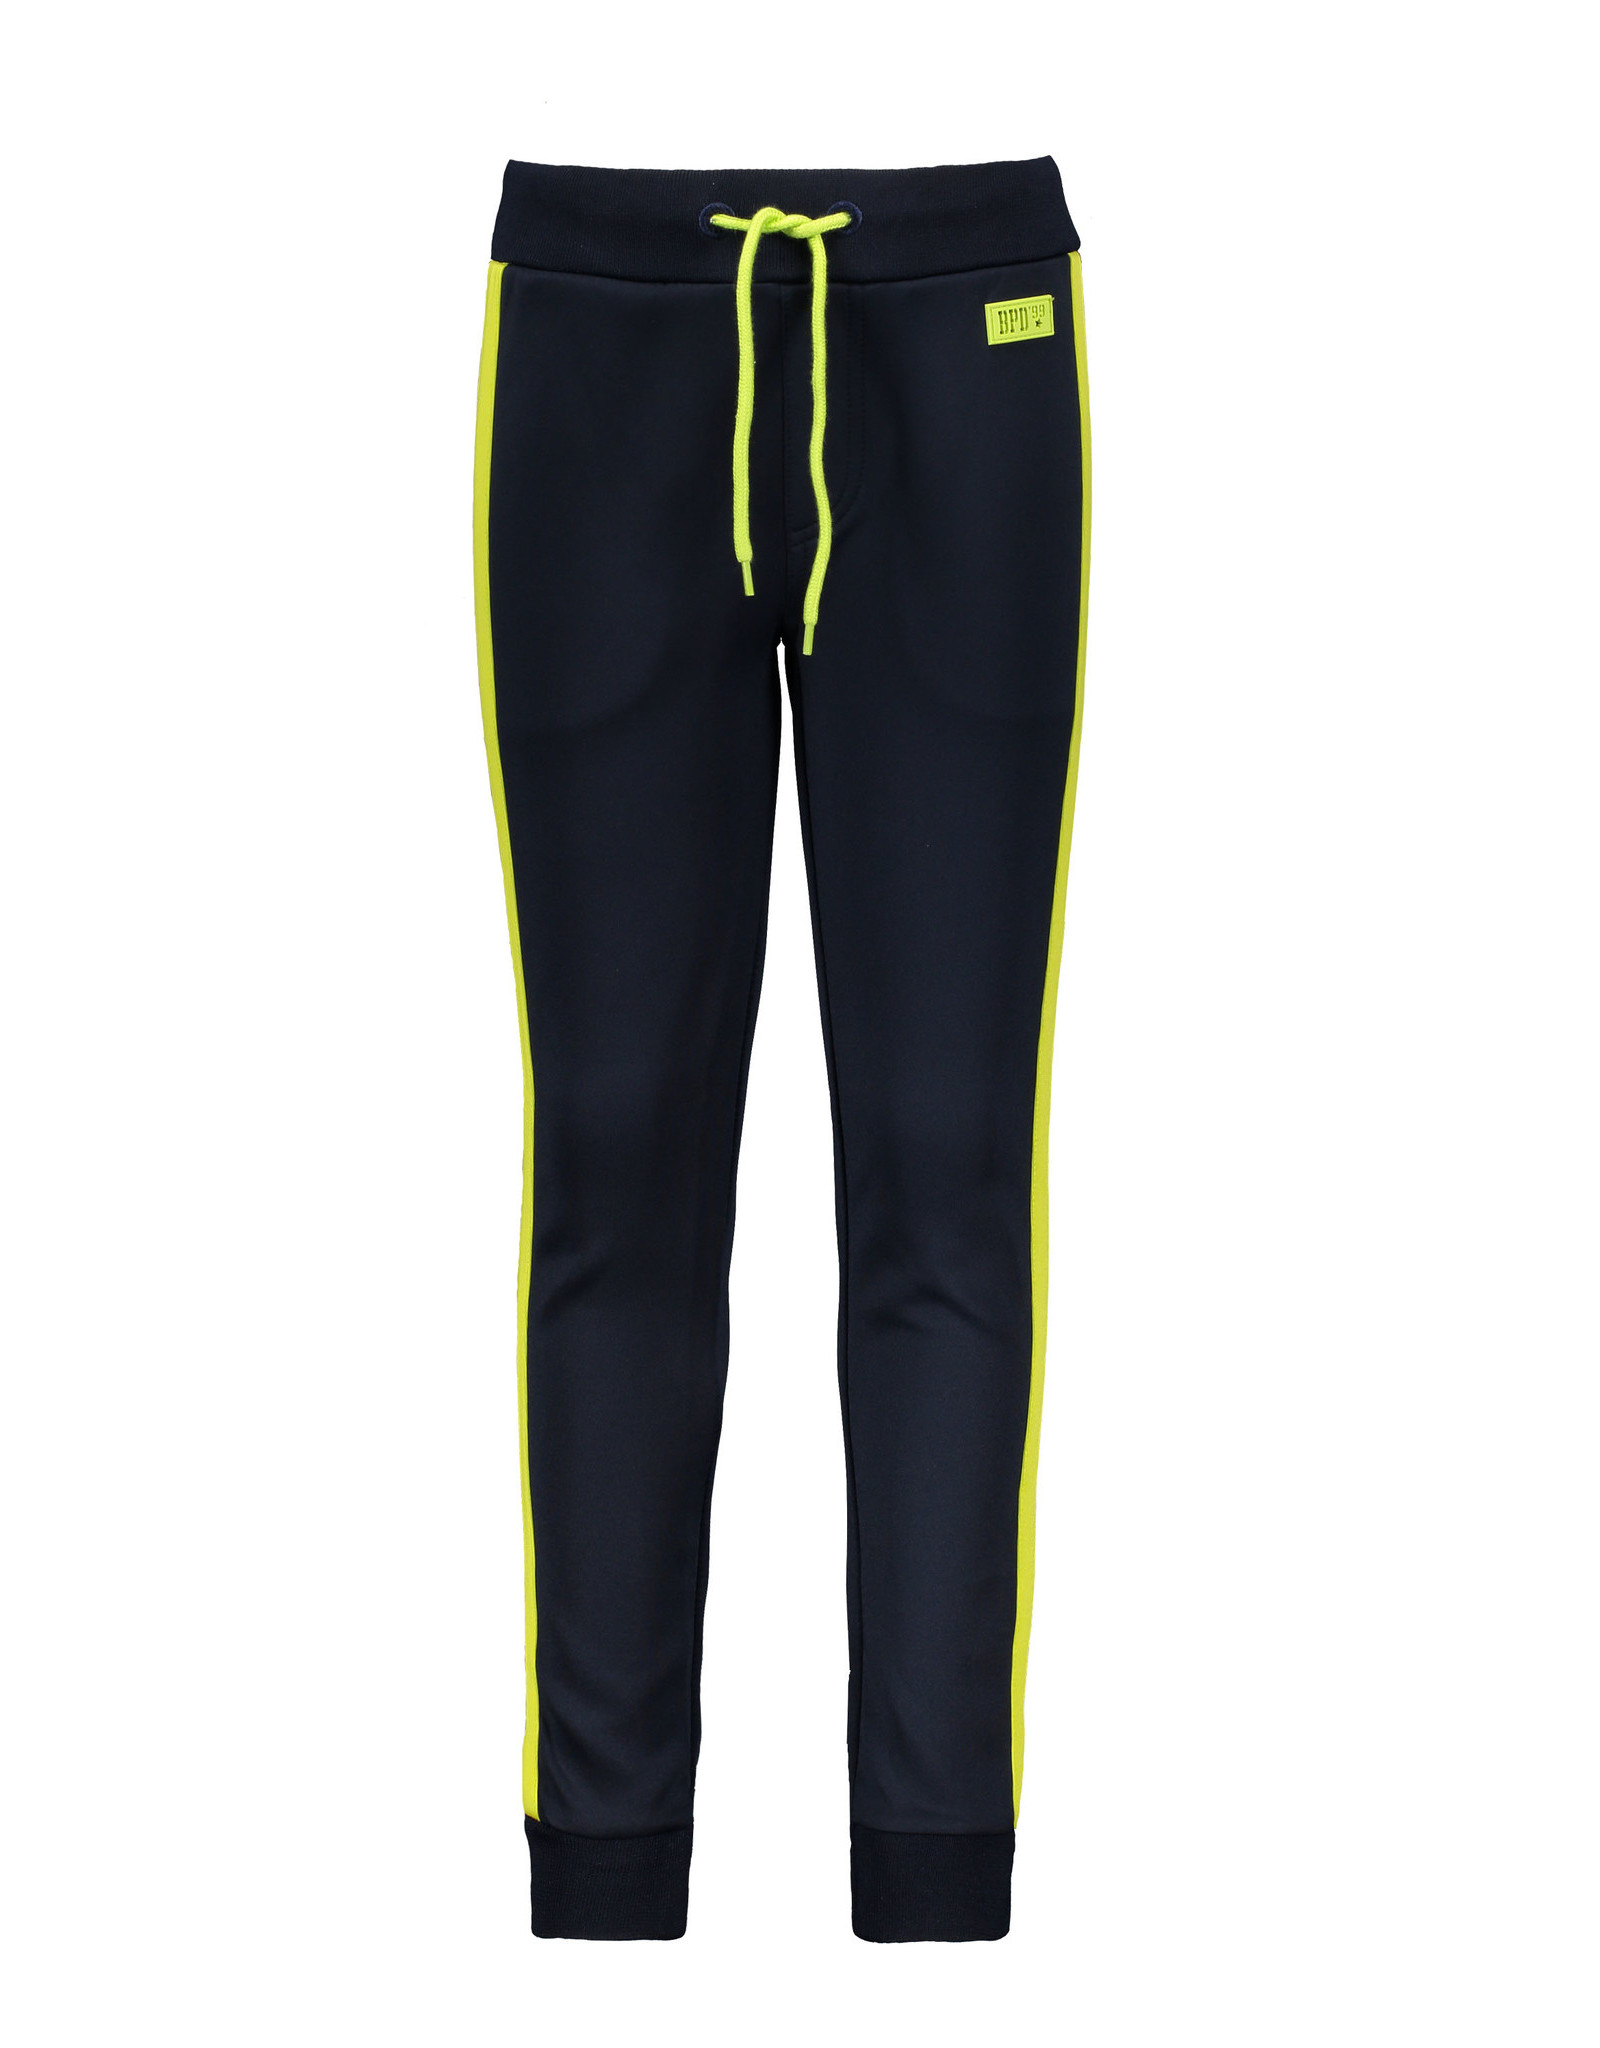 Bampidano Kids Boys trainer pants with contrast stripes, navy